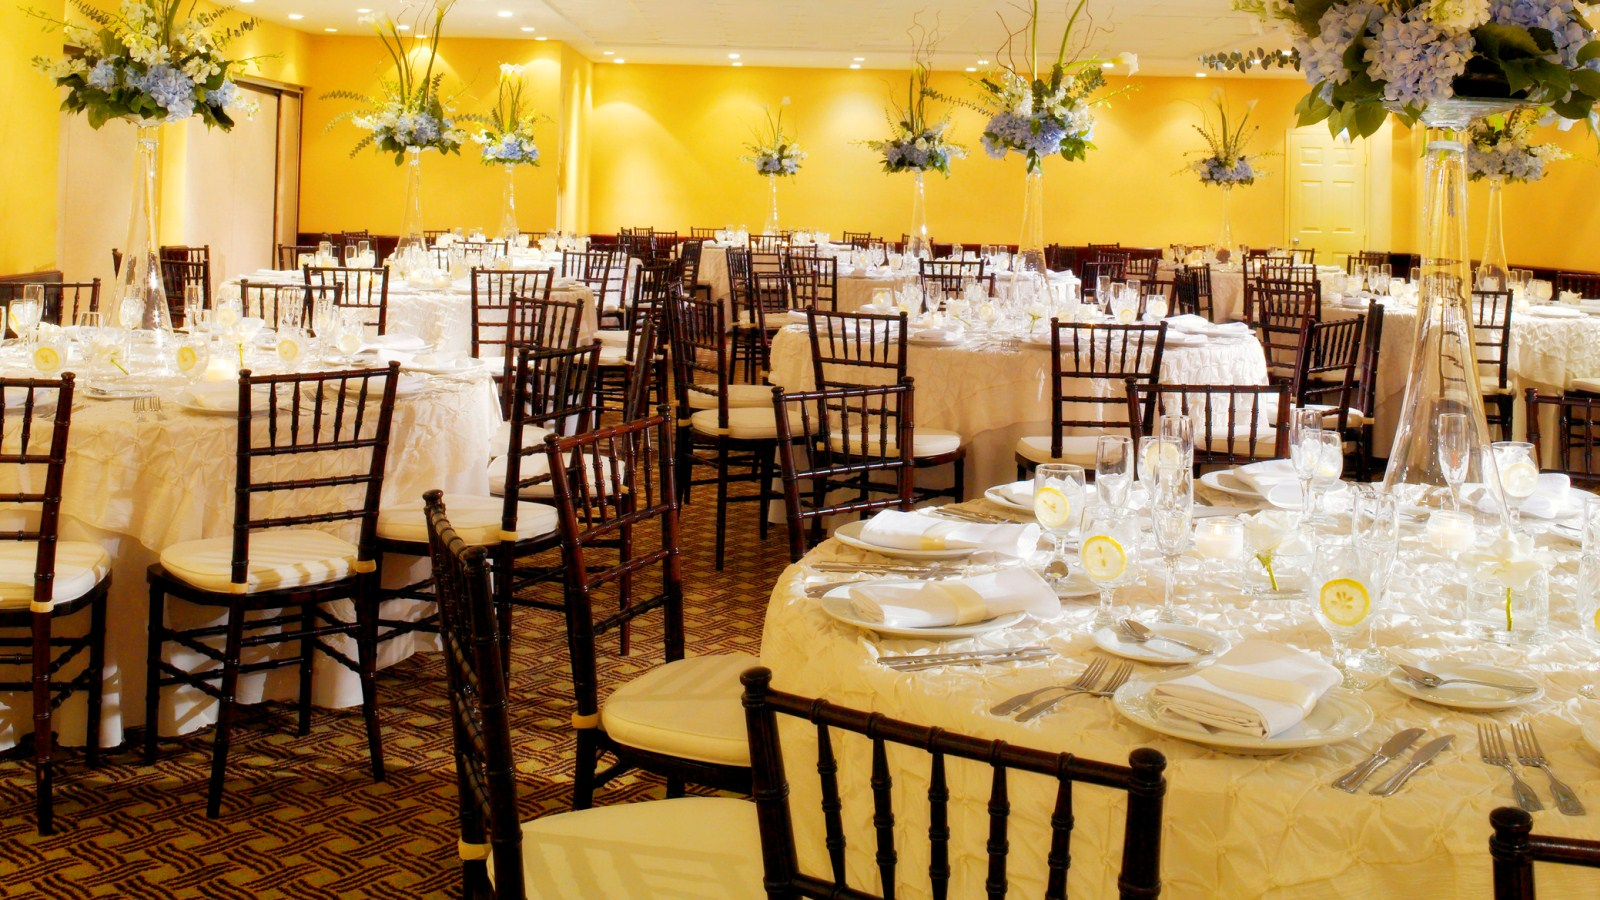 Miami Beach Meeting Rooms - Banquet Setup